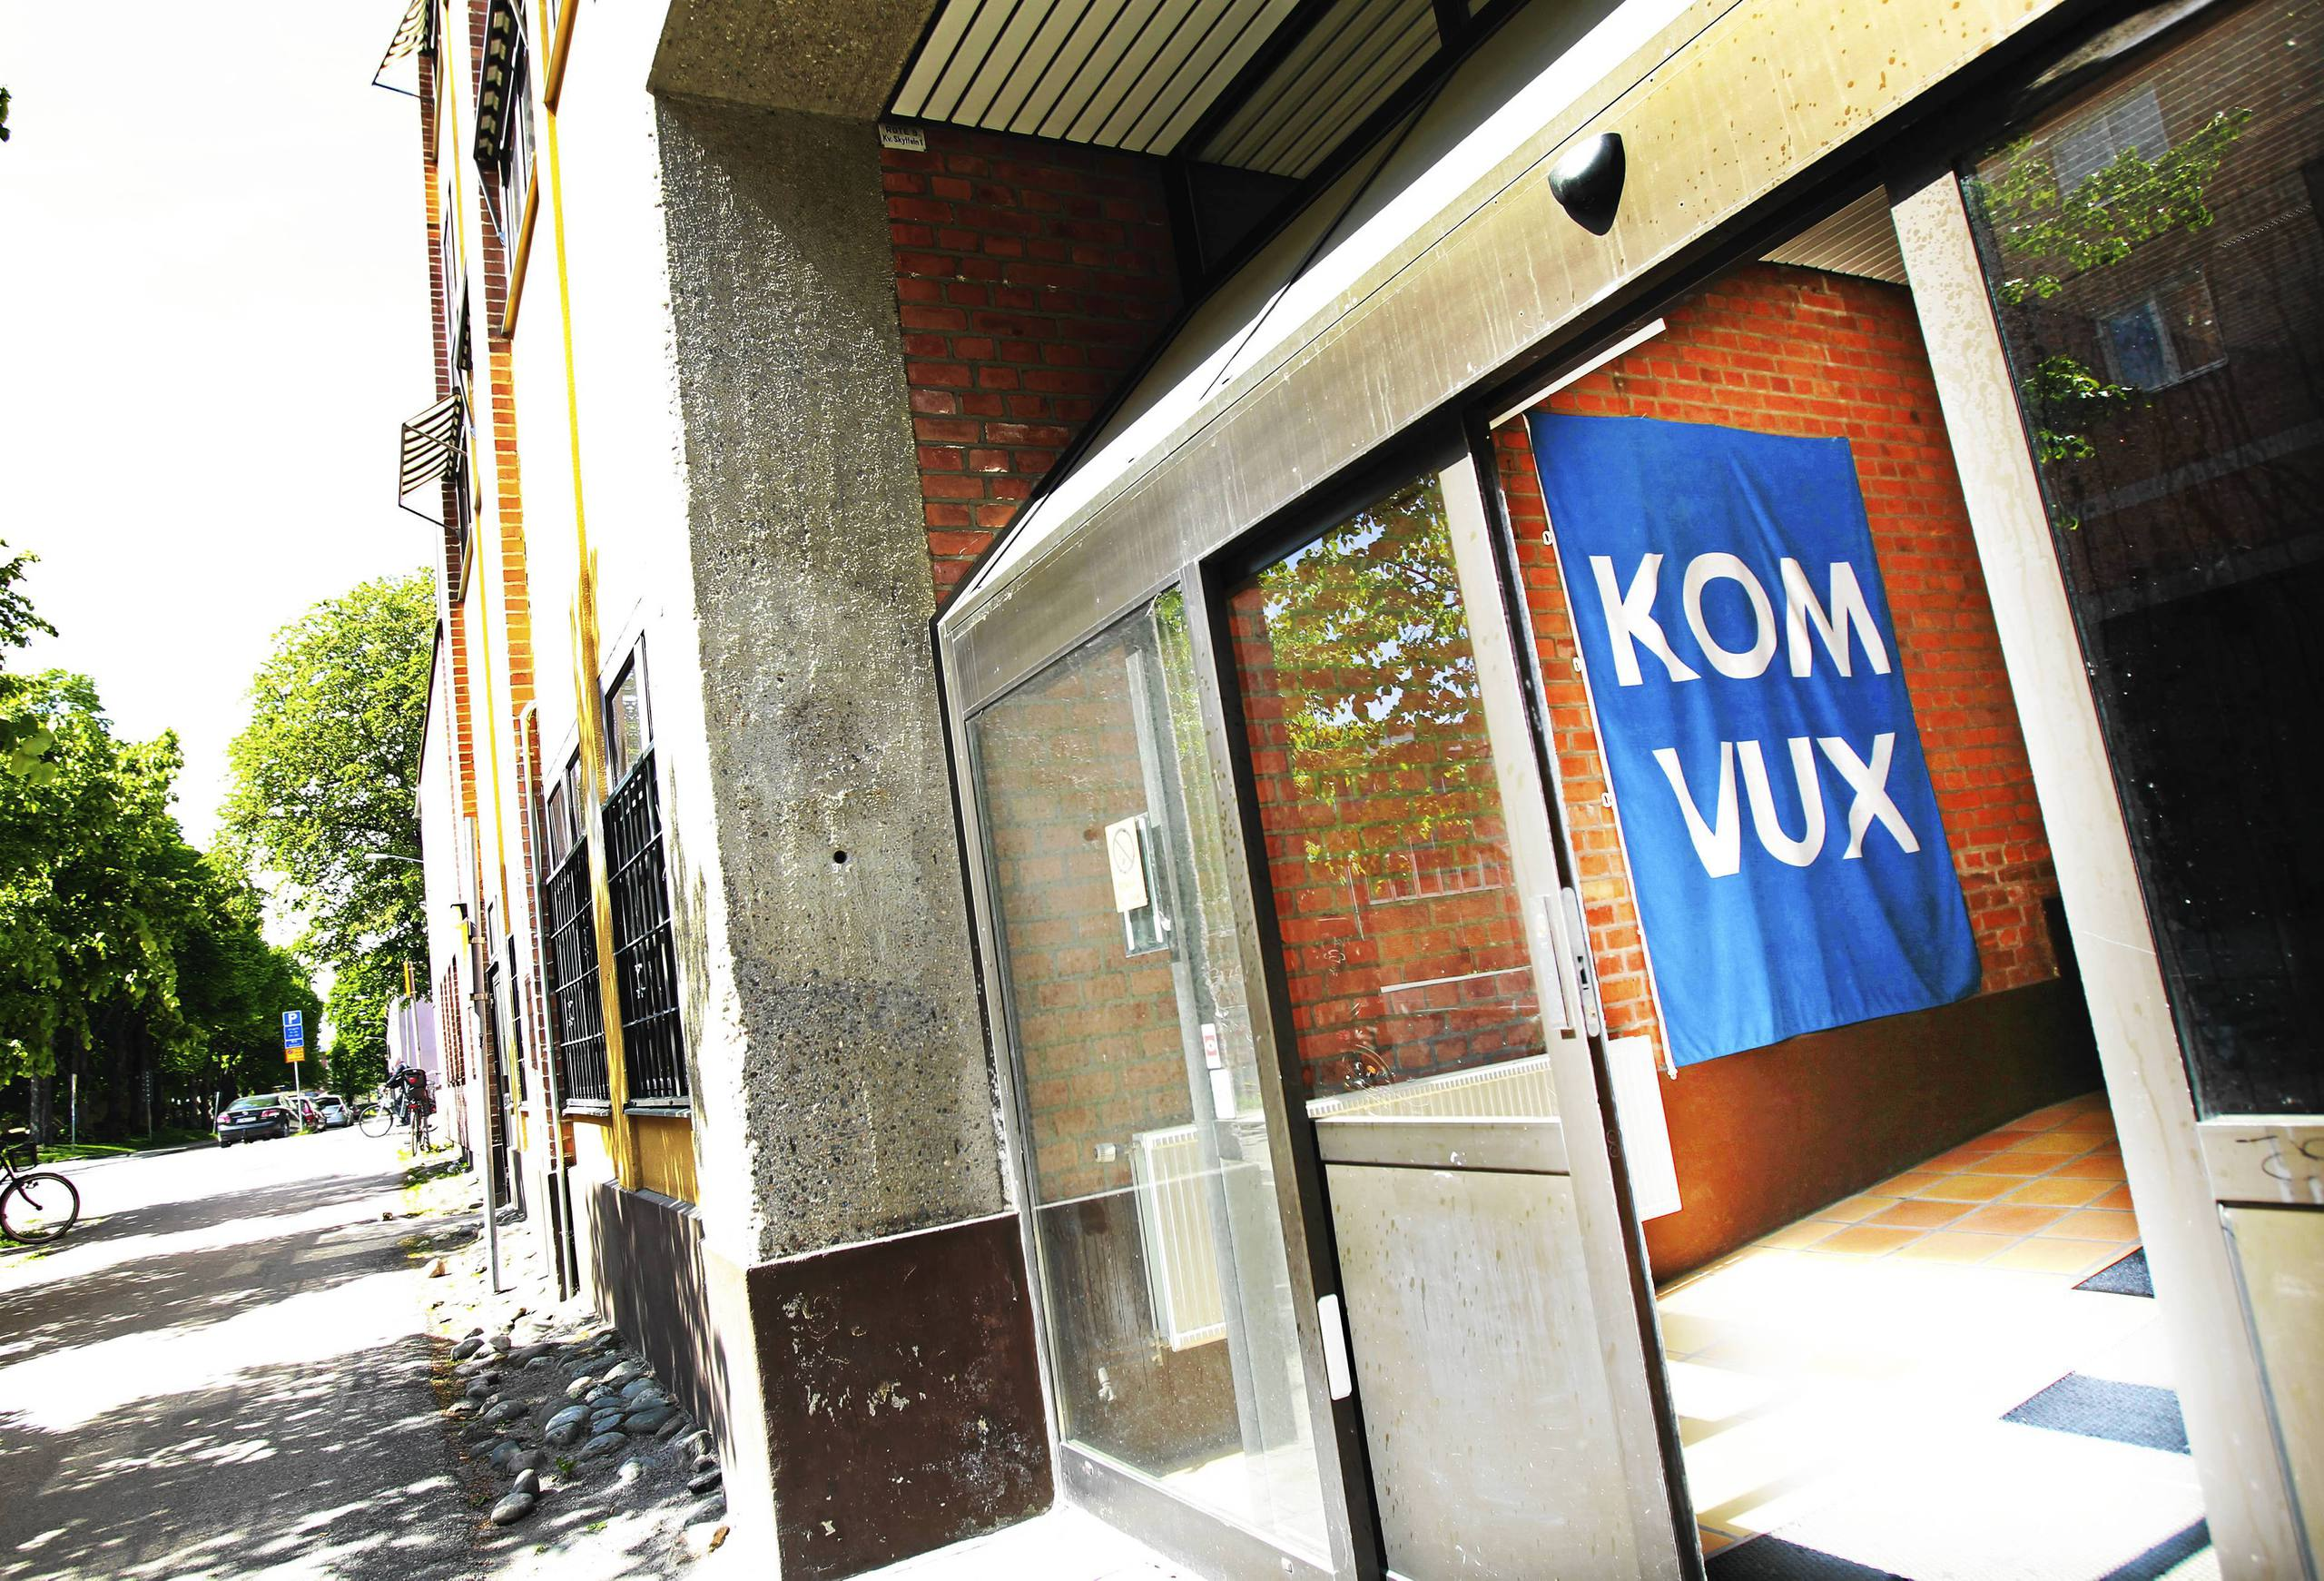 Komvux bor privatiseras